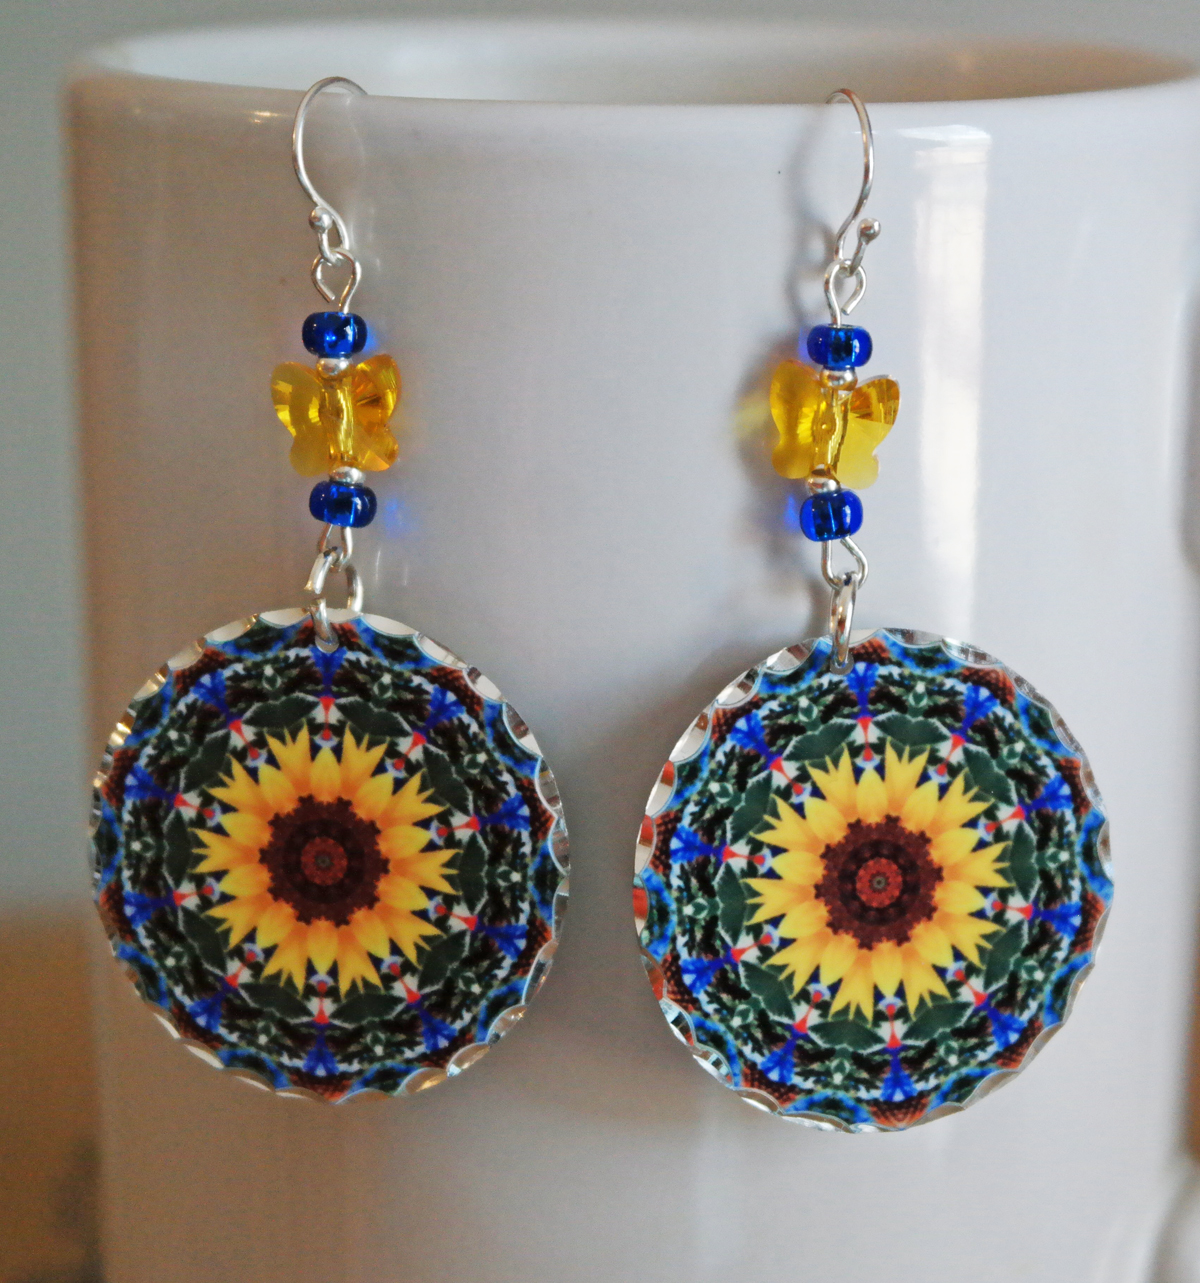 Sunflower Chakra Mandala Earrings Boho Chic Sacred Geometry Zen Hippie Kaleidoscope Gypsy New Age Unique Gift For Her My Beauty Within